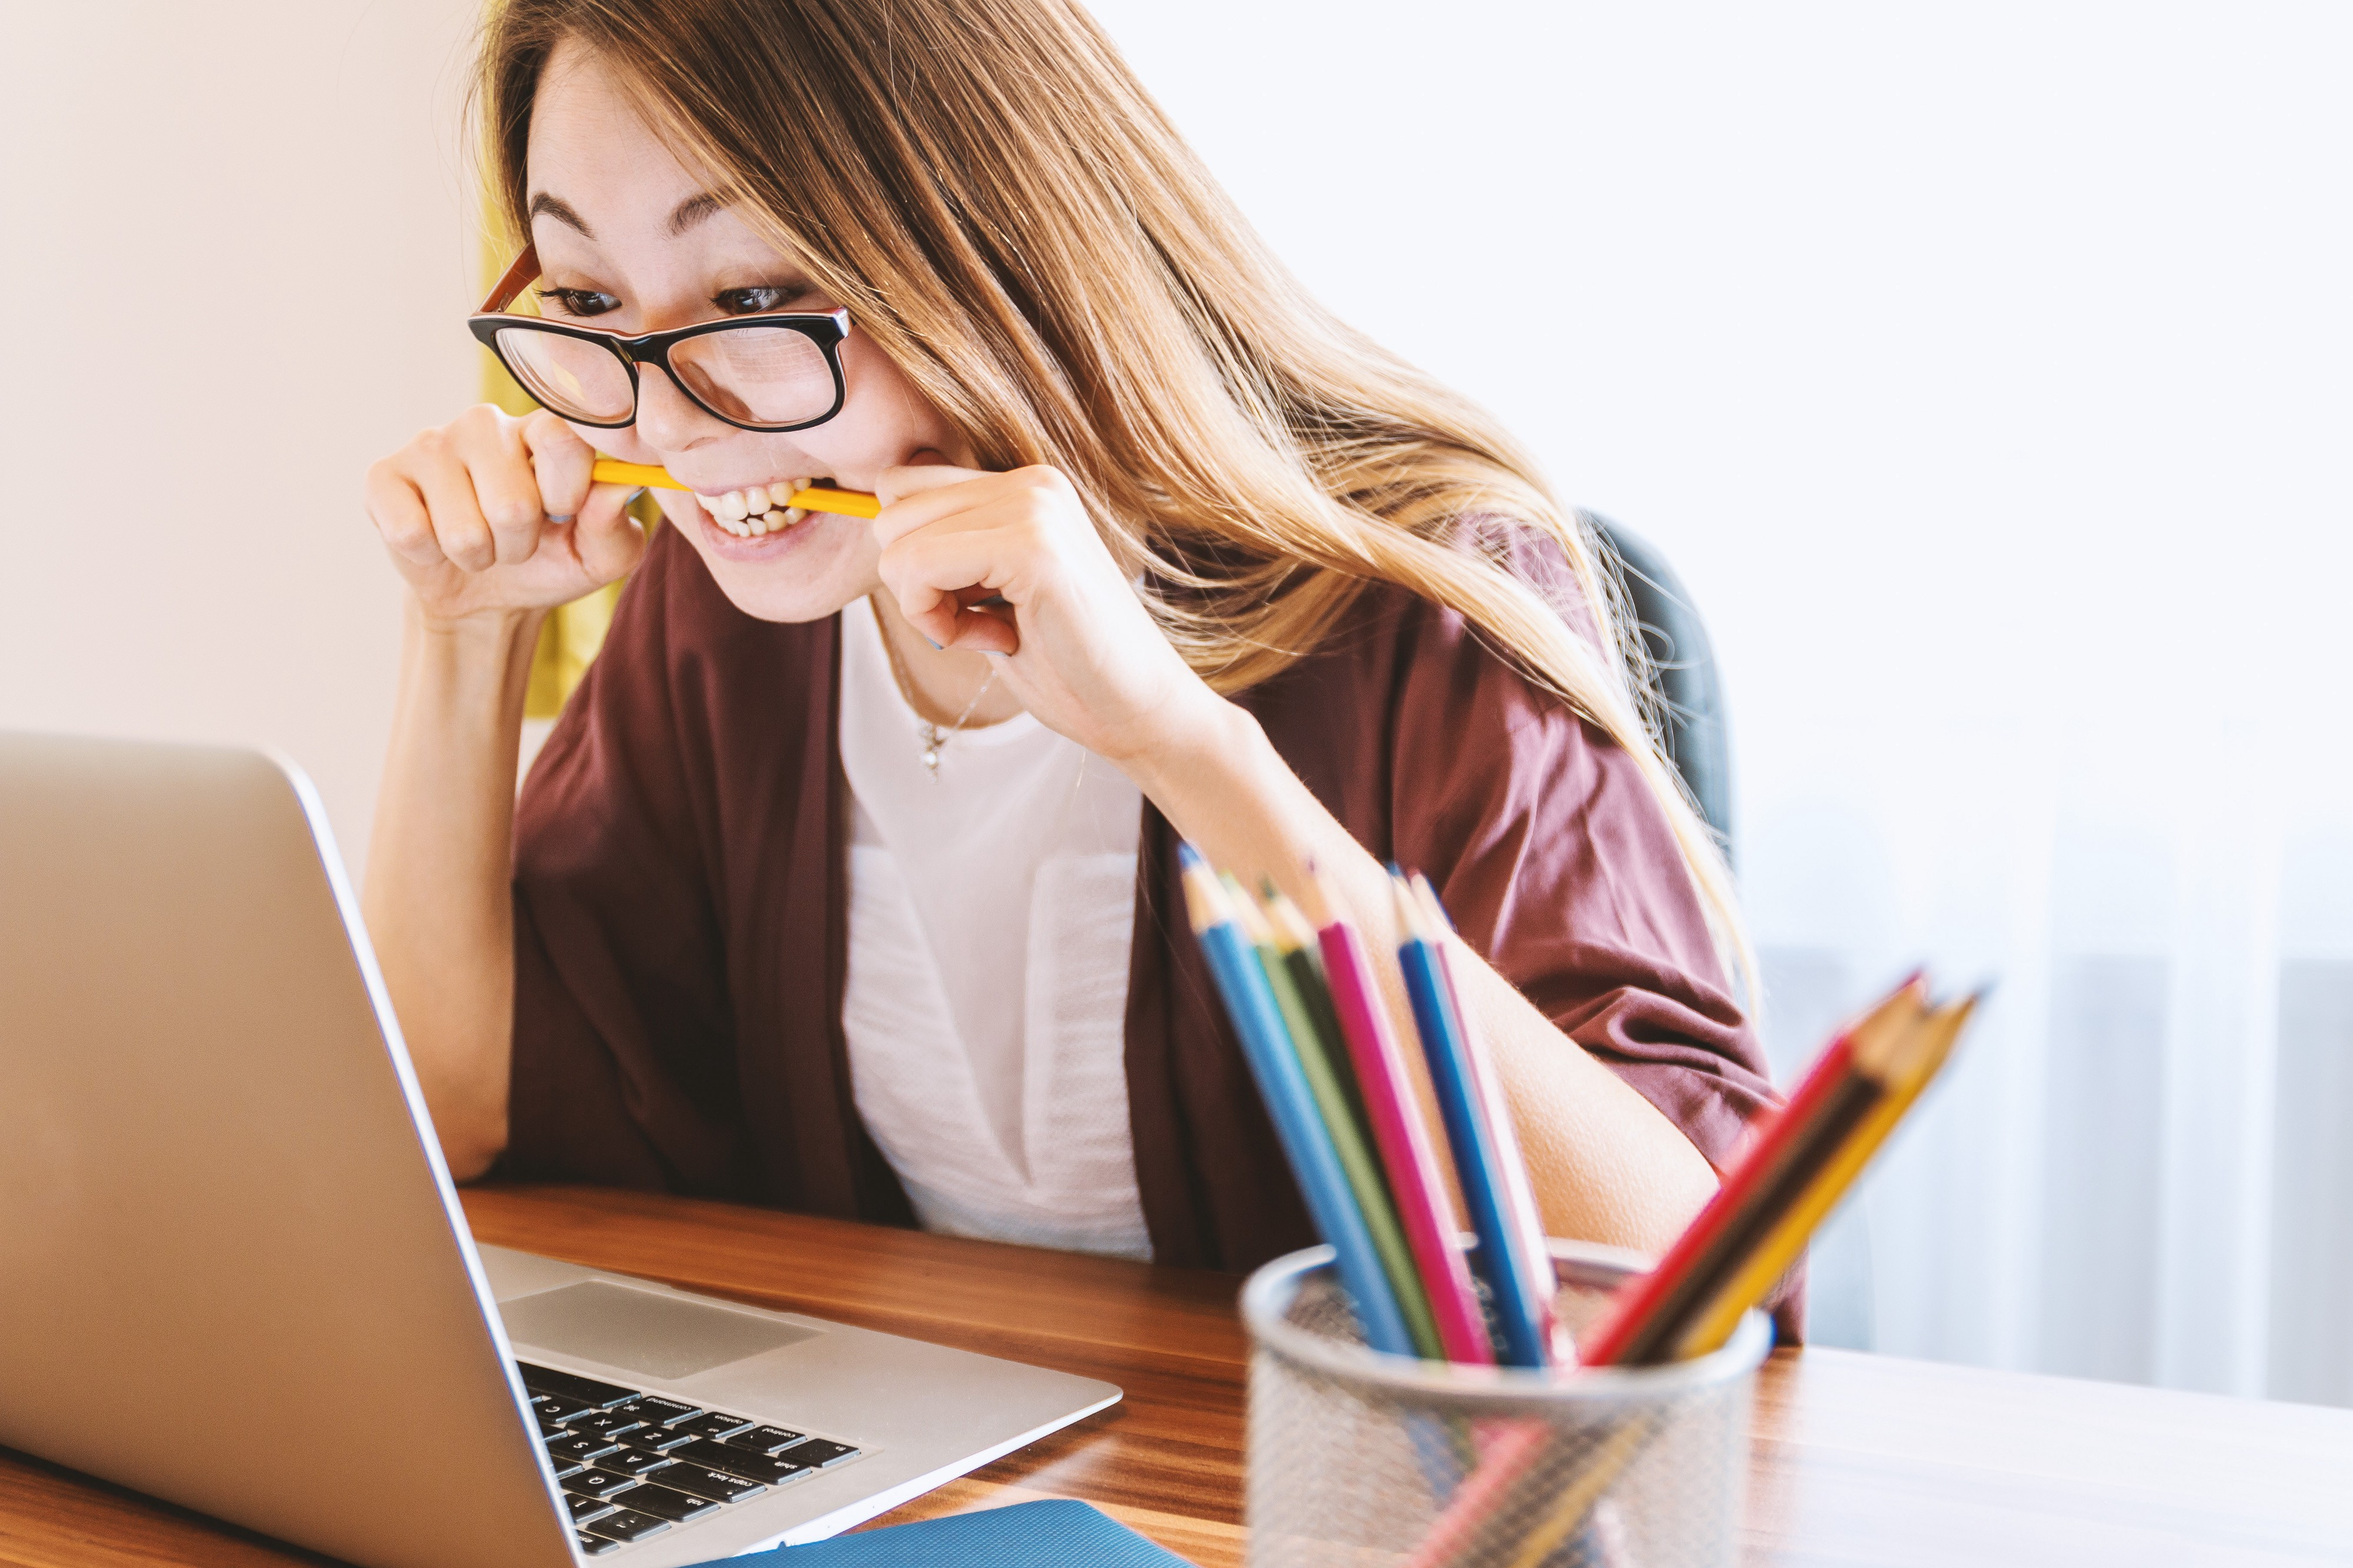 Photo of a nervous woman biting her pencil while looking at her computer screen